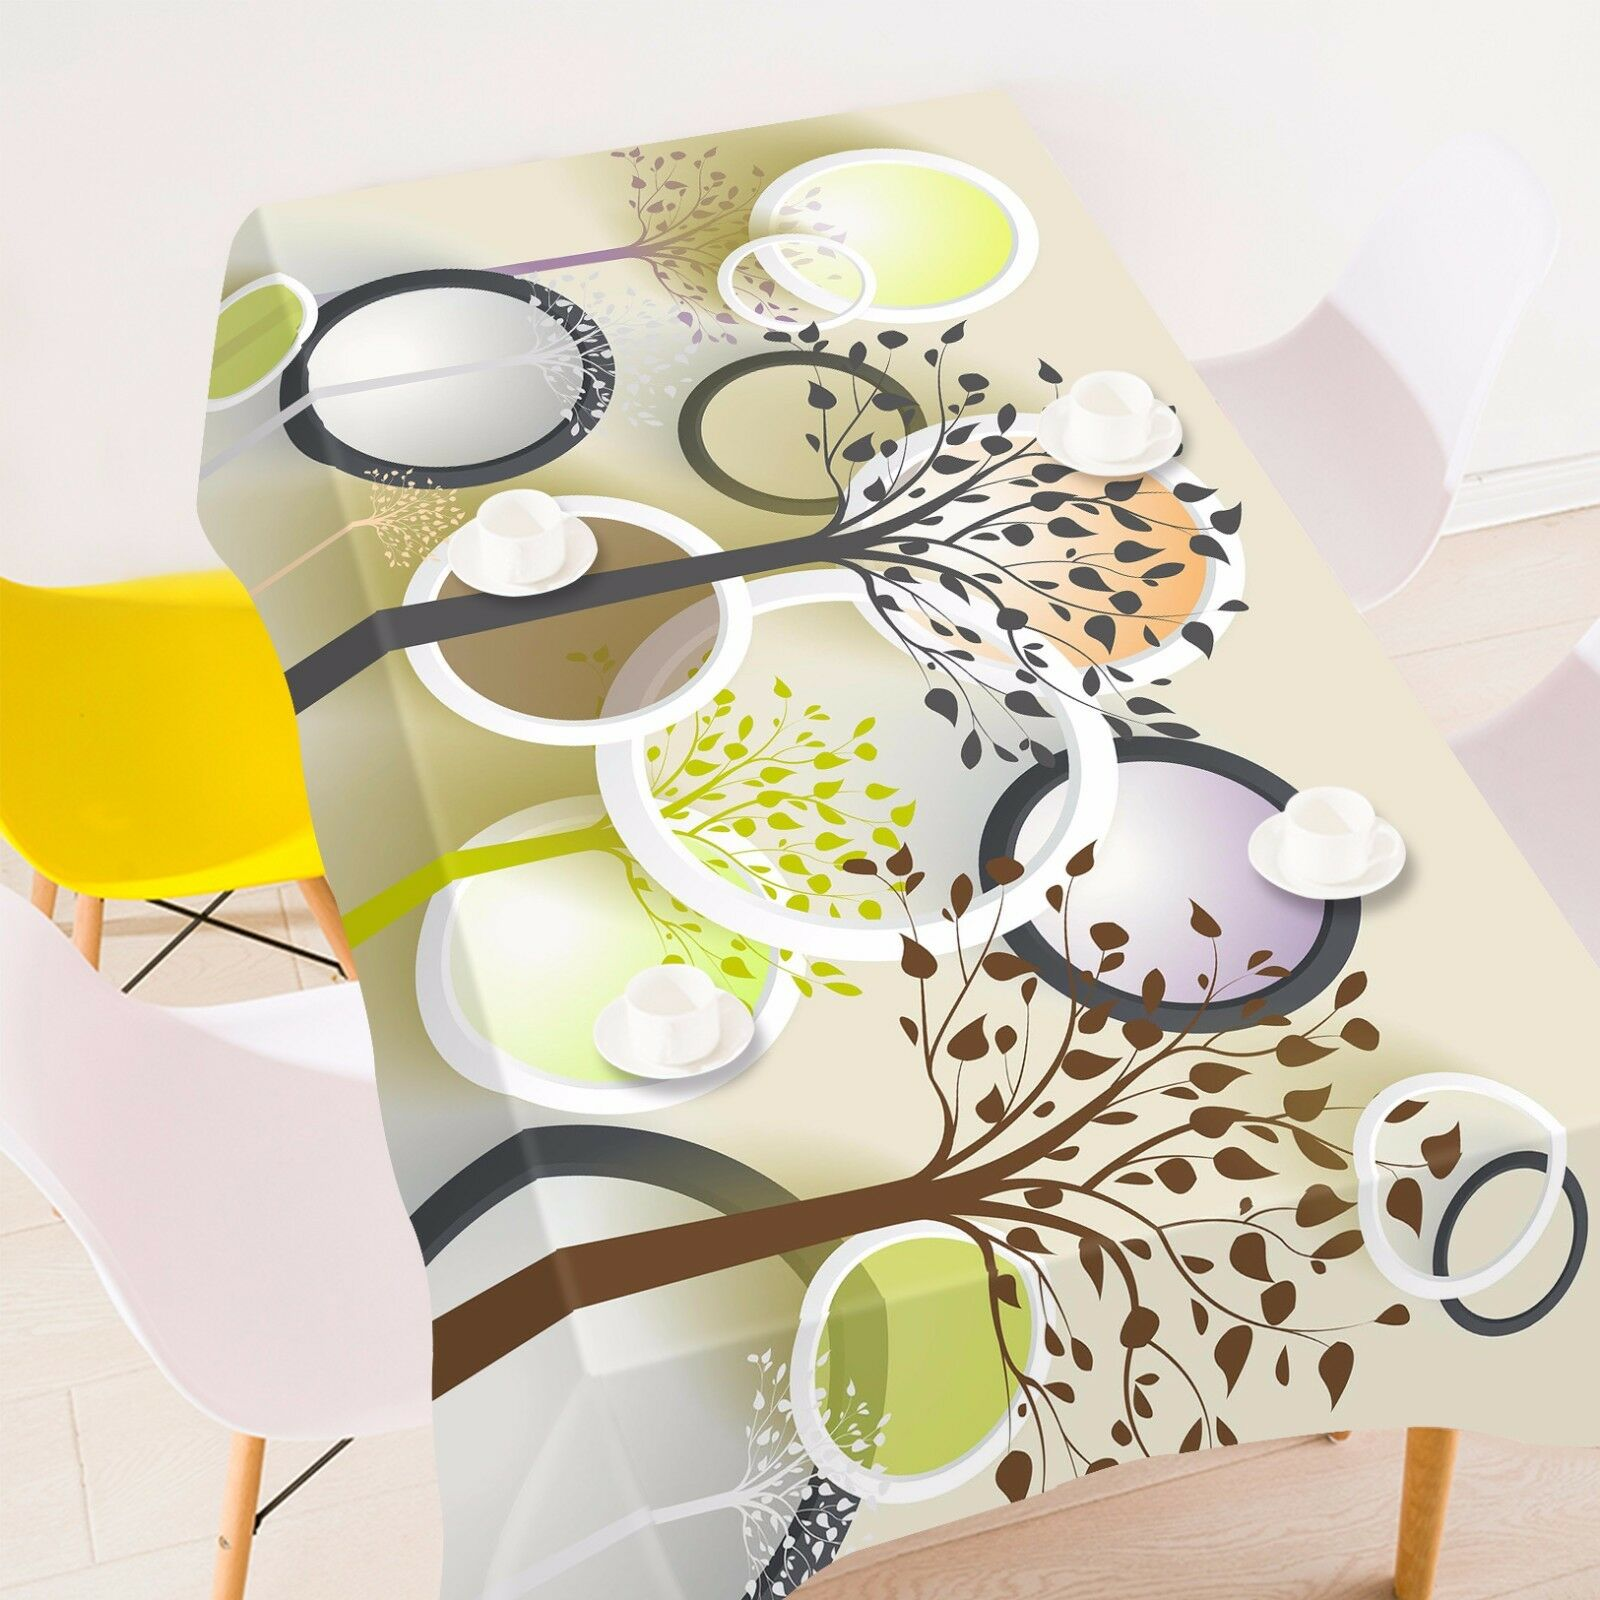 3D Ring tree95 Tablecloth Table Table Table Cover Cloth Birthday Party Event AJ WALLPAPER UK 76c04b